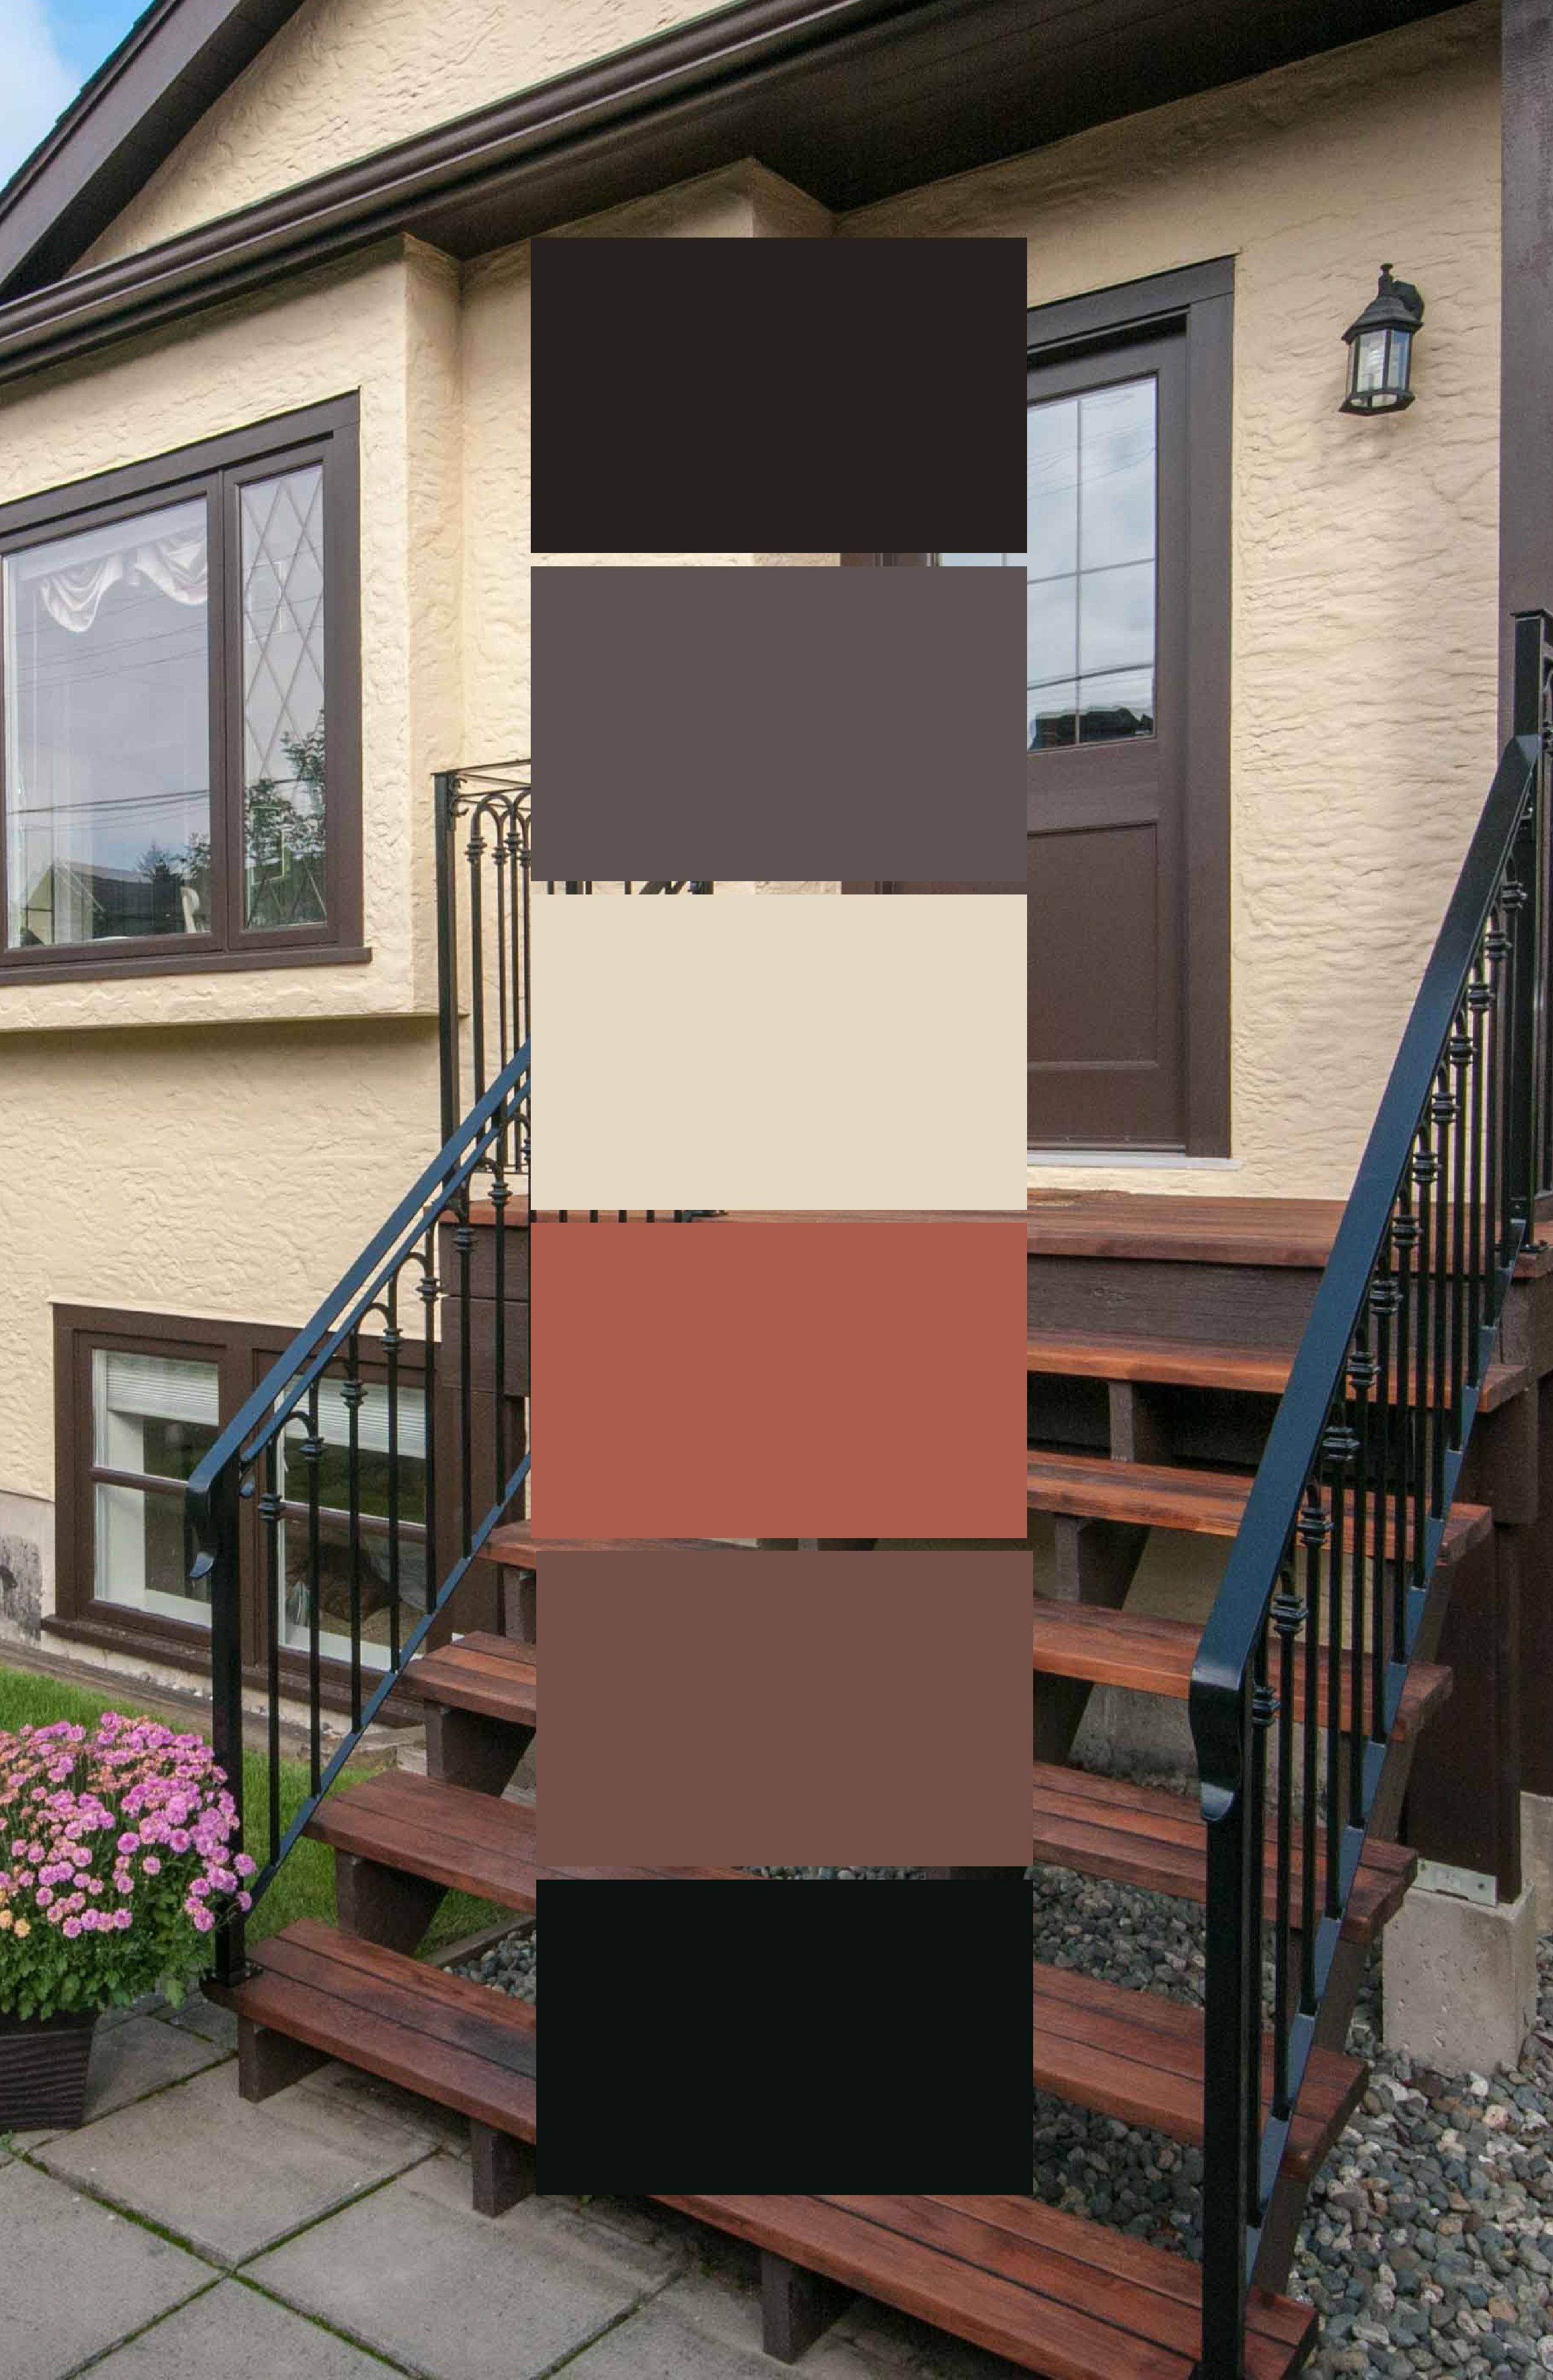 This House Is A Great Example Of An Earth Toned Colour Palette Not Every House Needs To Stand Out Wi House Paint Exterior Exterior House Colors House Painting